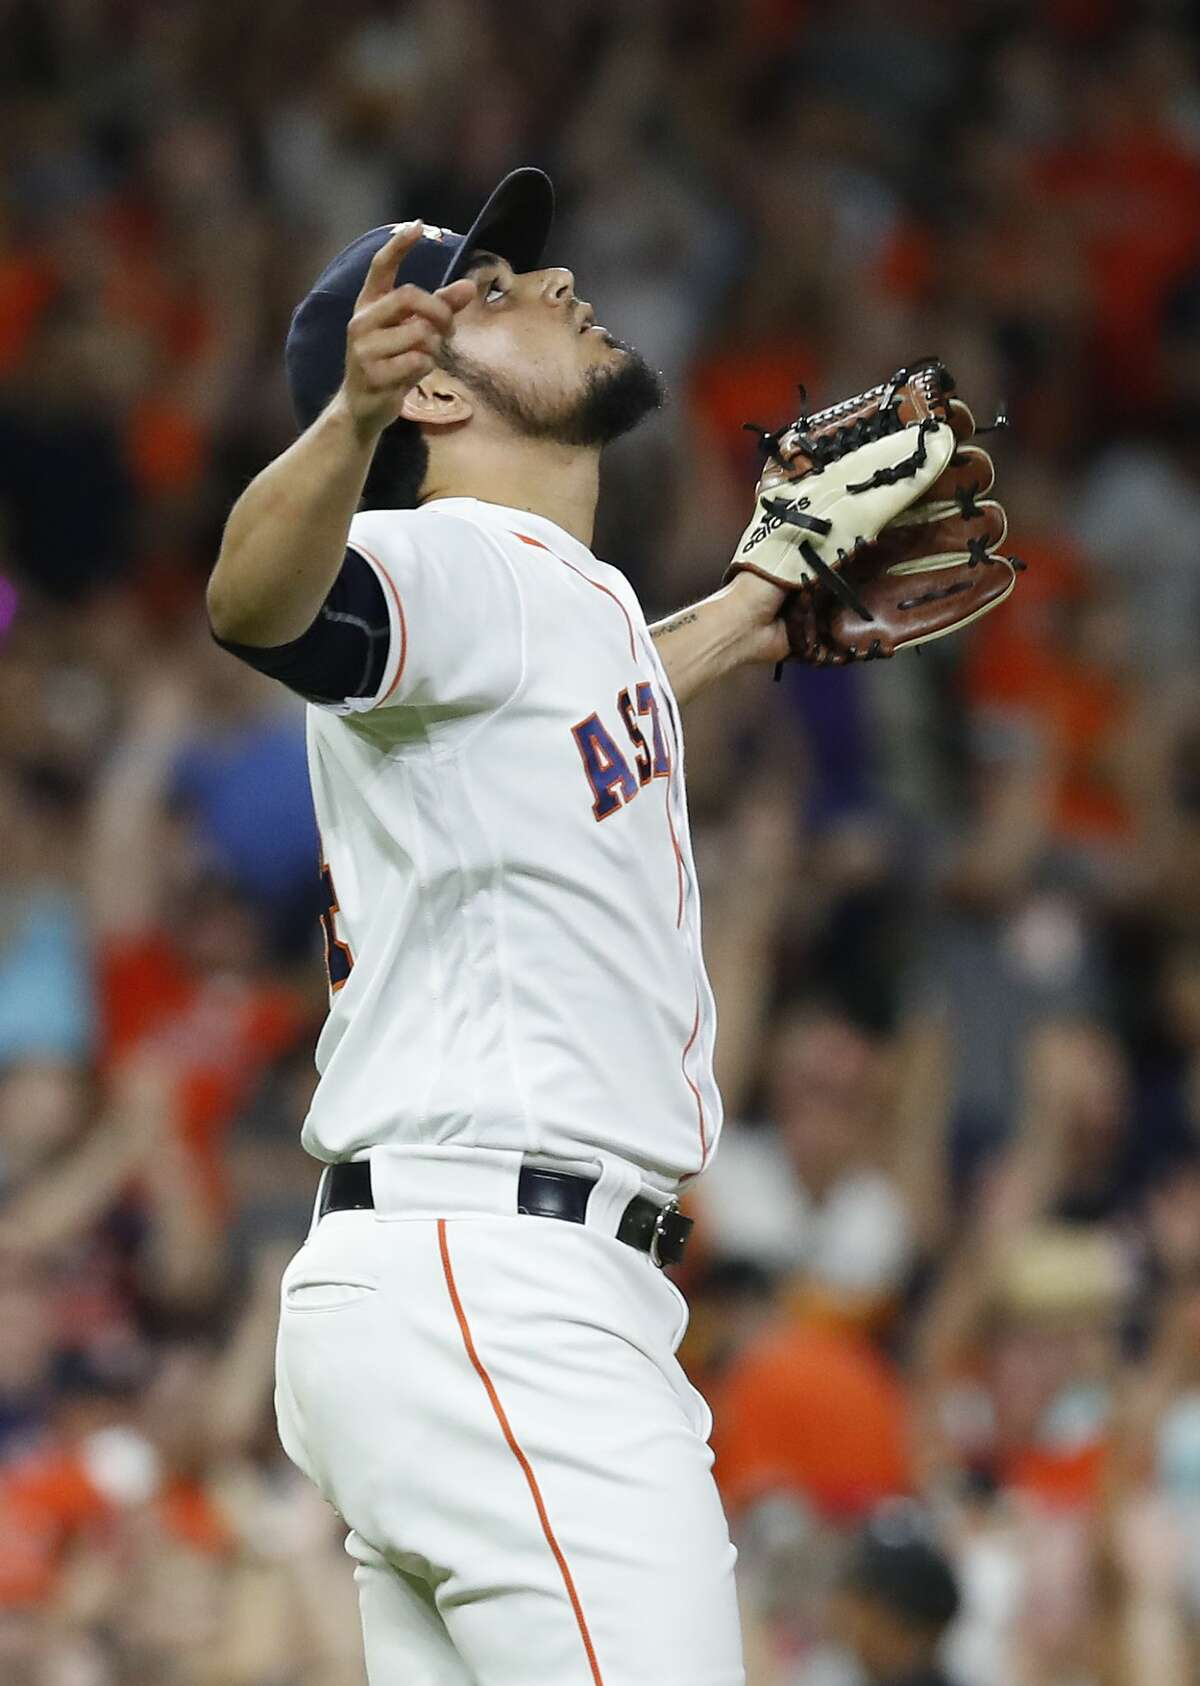 Houston Astros relief pitcher Roberto Osuna (54) reacts after the Astros 7-3 win over Los Angeles Angels during an MLB baseball game at Minute Maid Park, Saturday, September 1, 2018, in Houston.